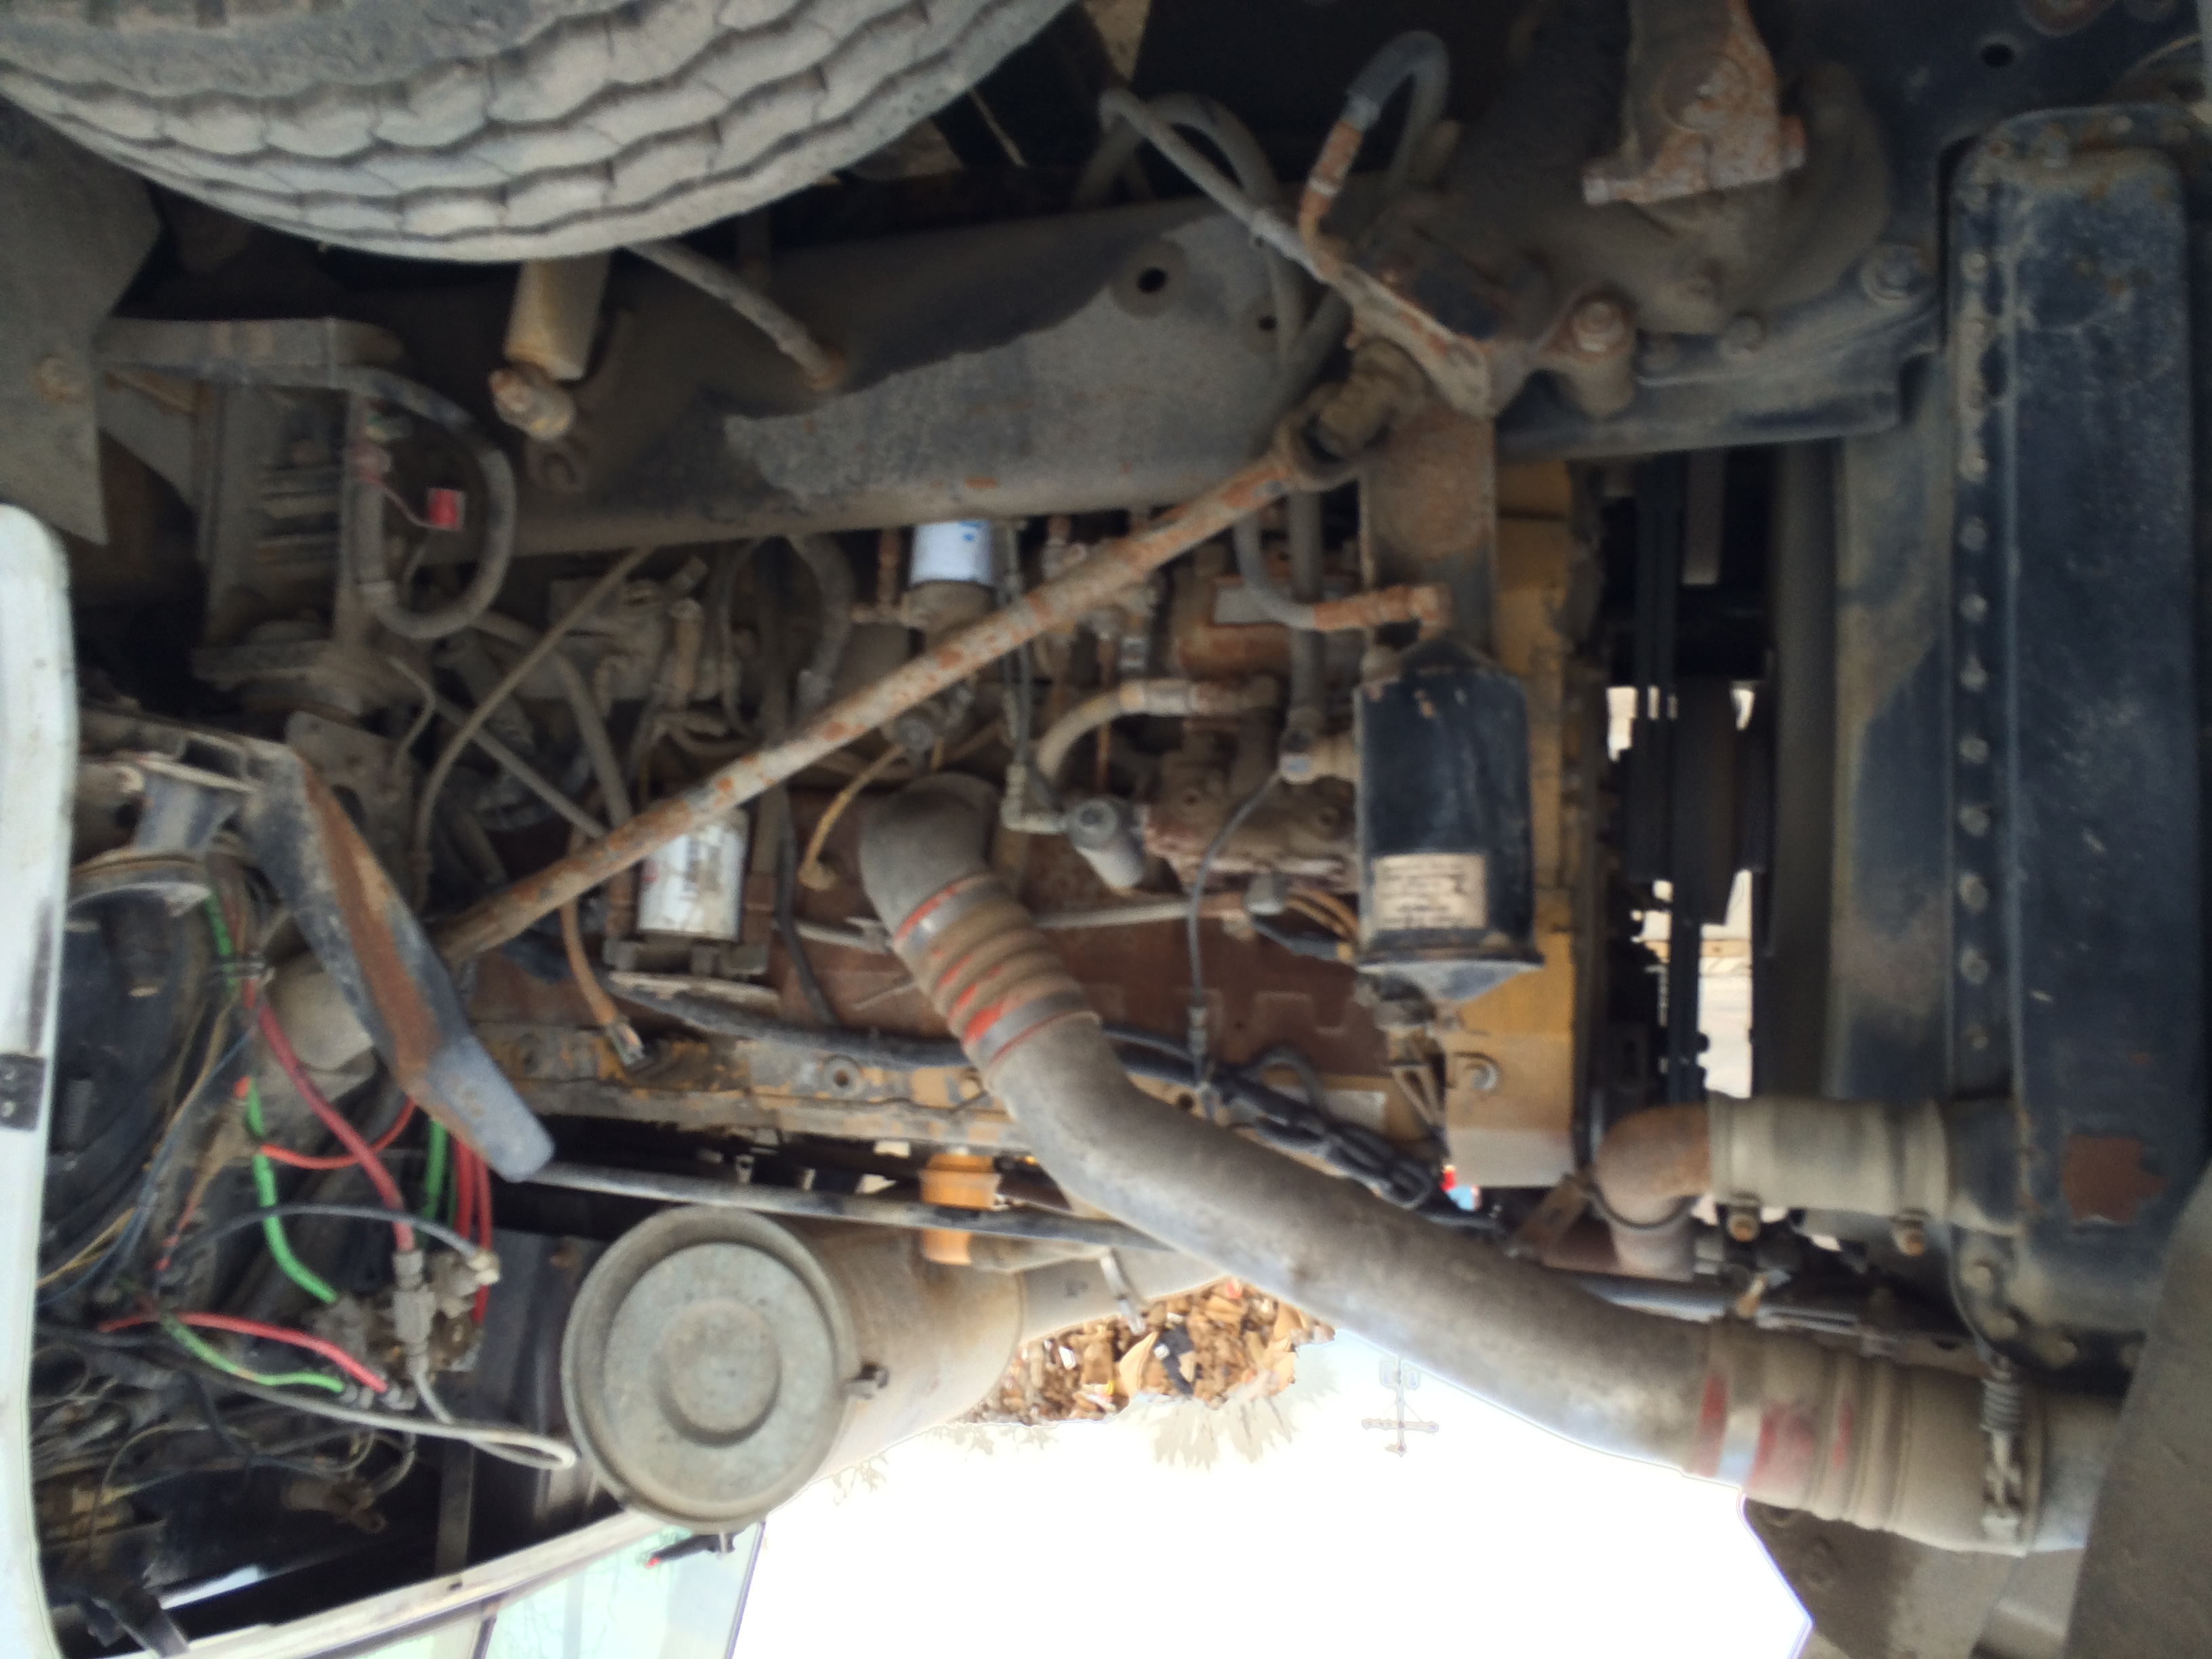 1977 Freightliner Kelly Equipment 3406e Caterpillar Engine Wiring For Img 0724 0726 0728 0732